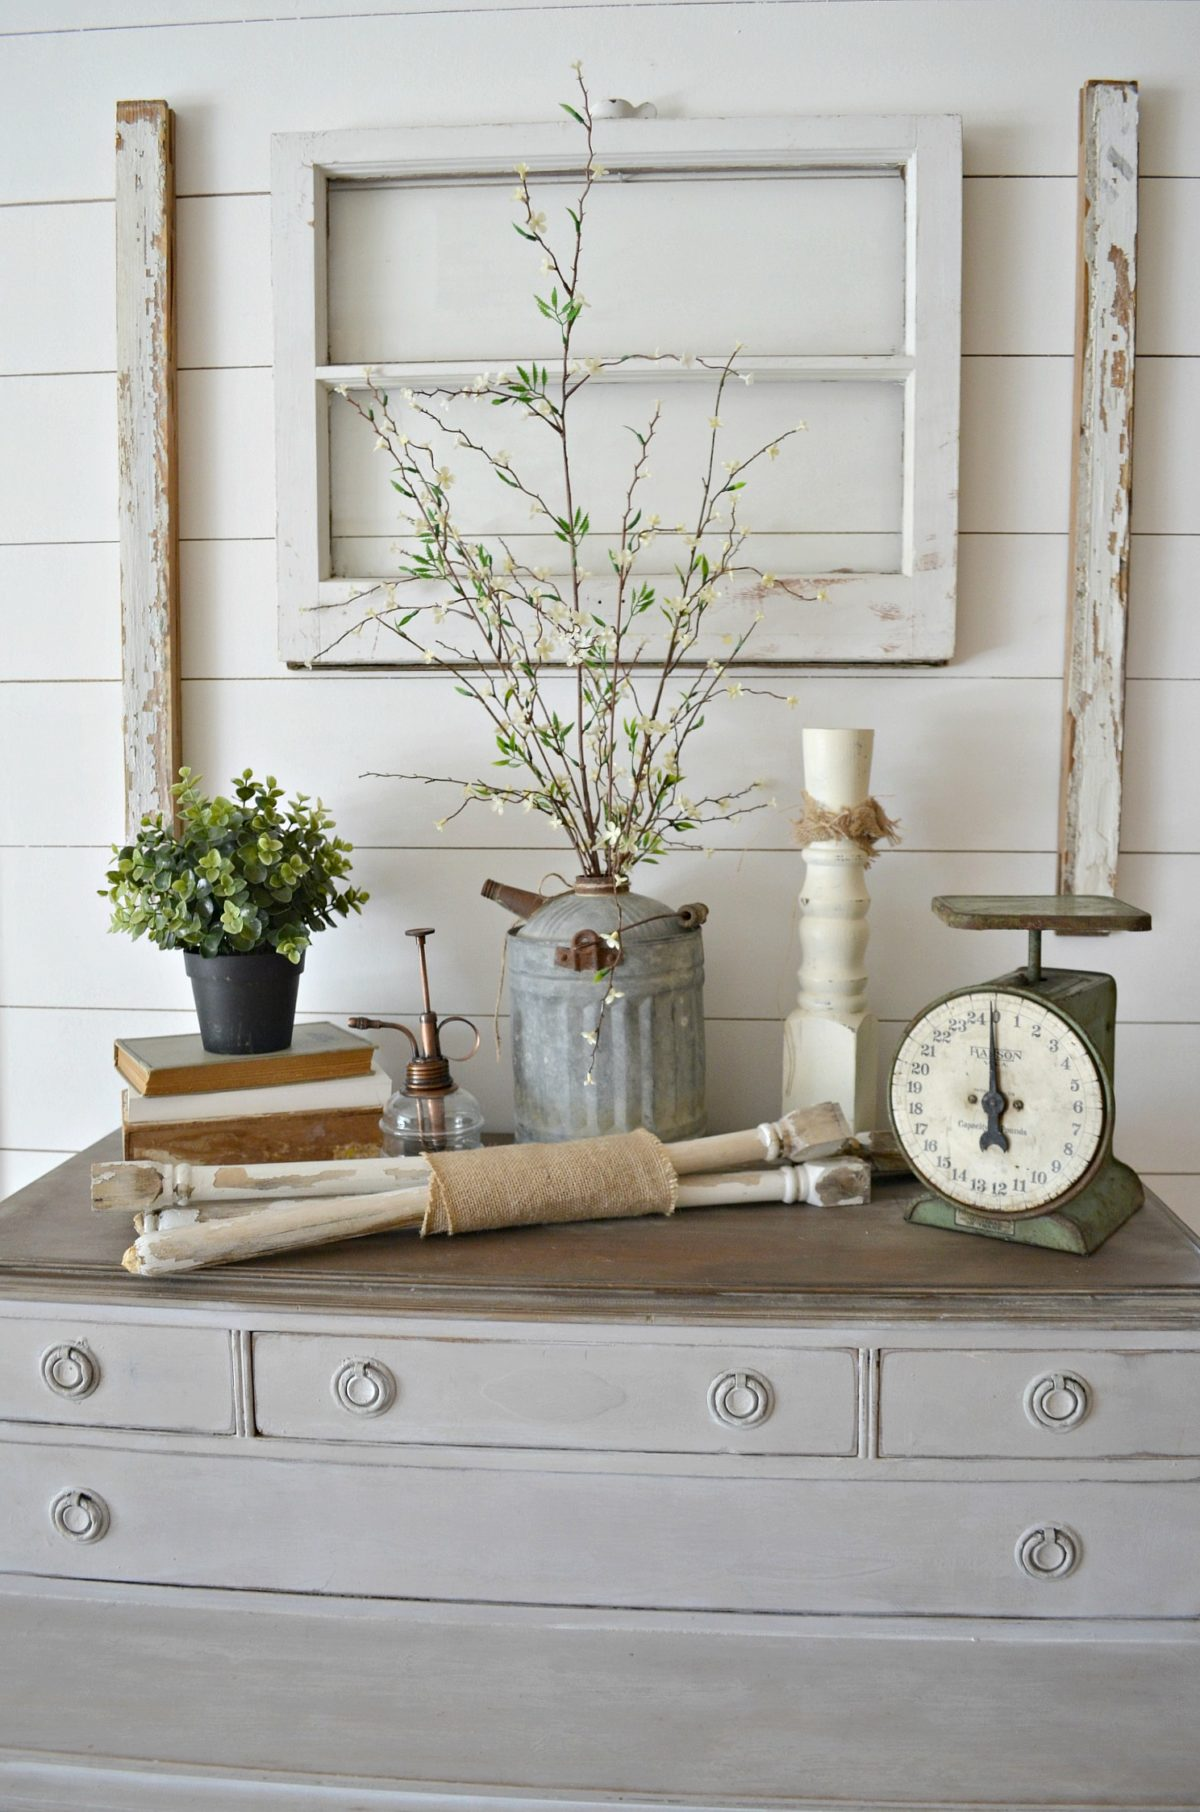 Simple ways to decorate with spindles little vintage nest old window farmhouse decor spindles amipublicfo Gallery